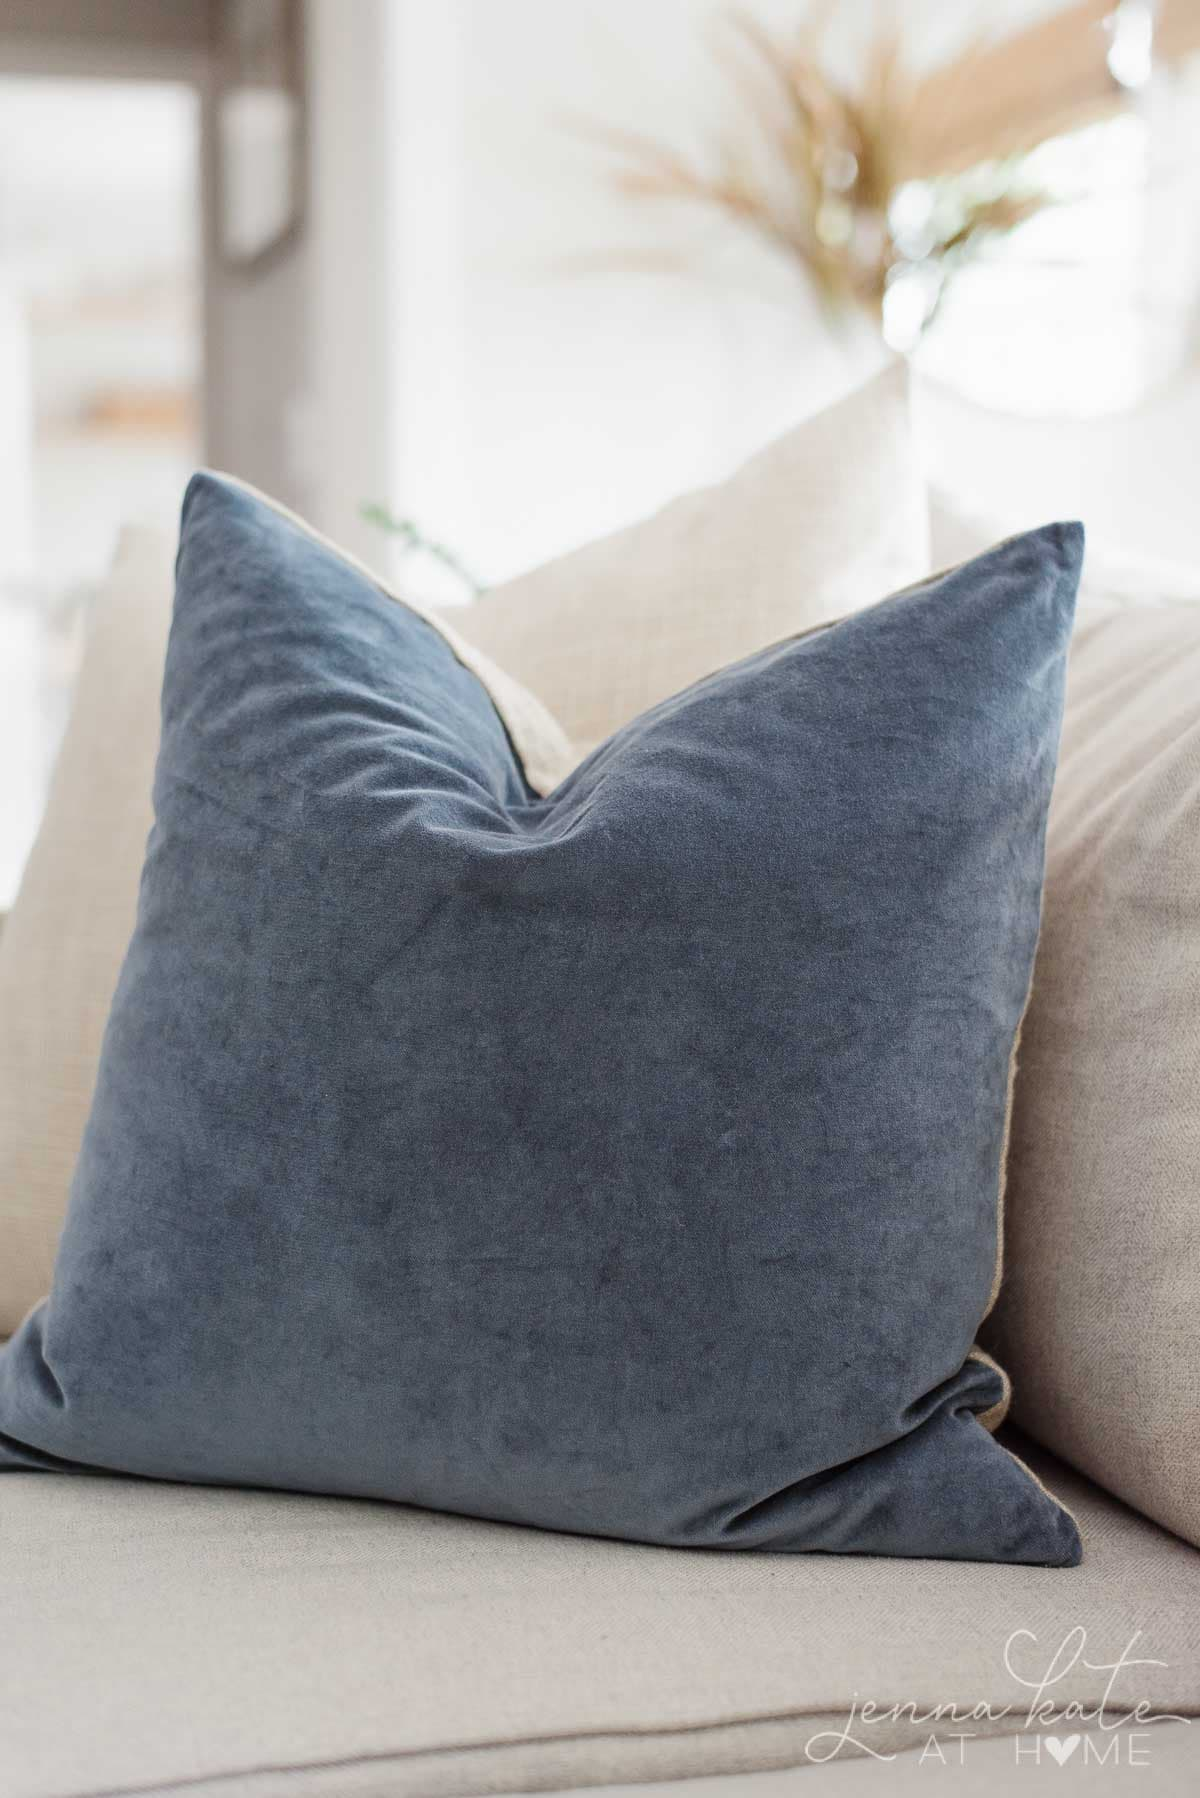 Buy throw pillow covers with the inserts because they are easy to store